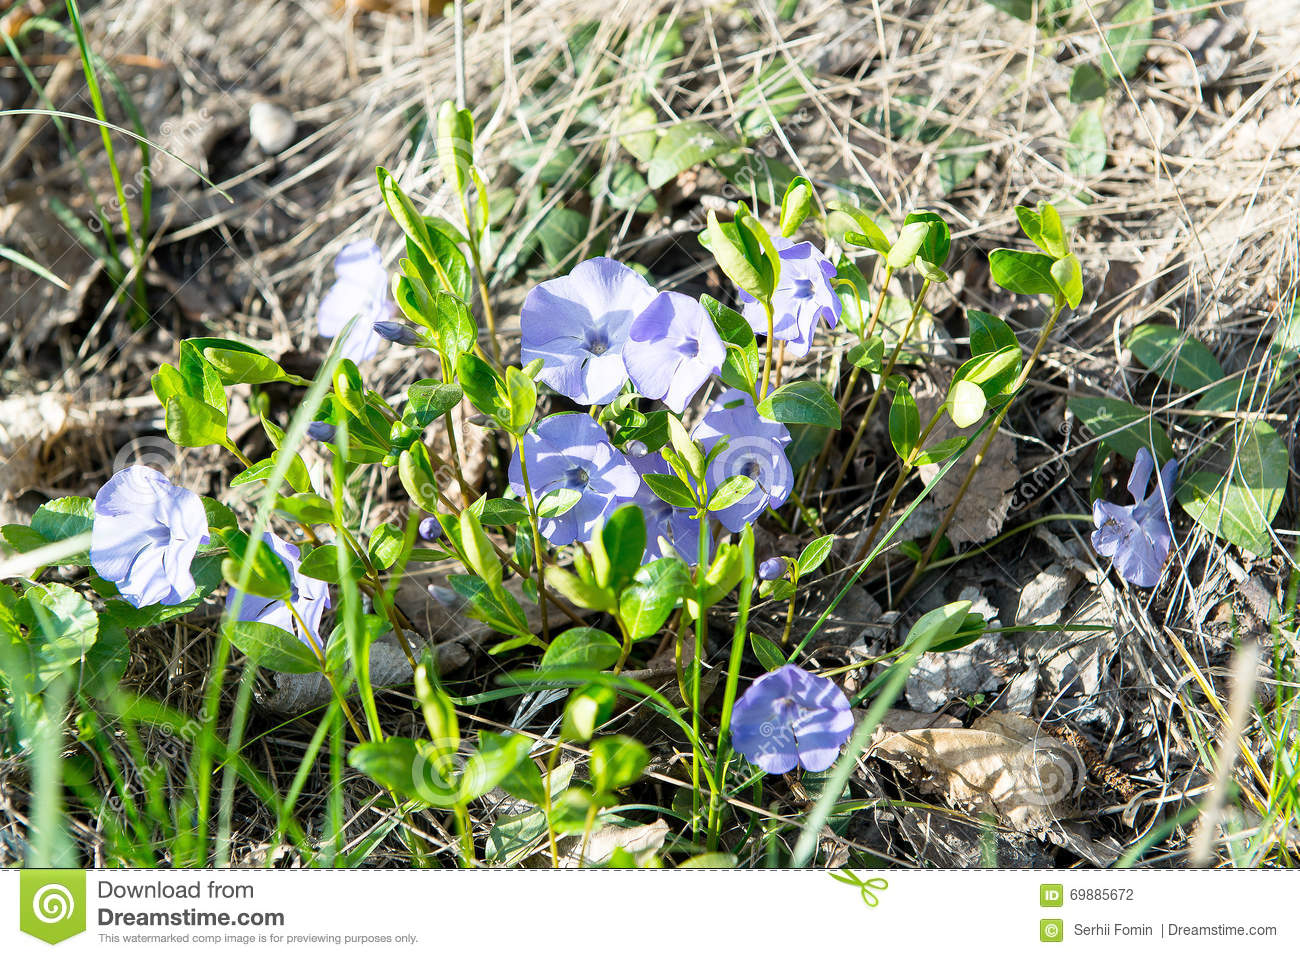 Periwinkle and daisy flowers decoration on white flowering vinca in closeup purple flowers scientific name viola odorata sweet violet english violet common violet or garden violet blooming in spring in wild meadow mightylinksfo